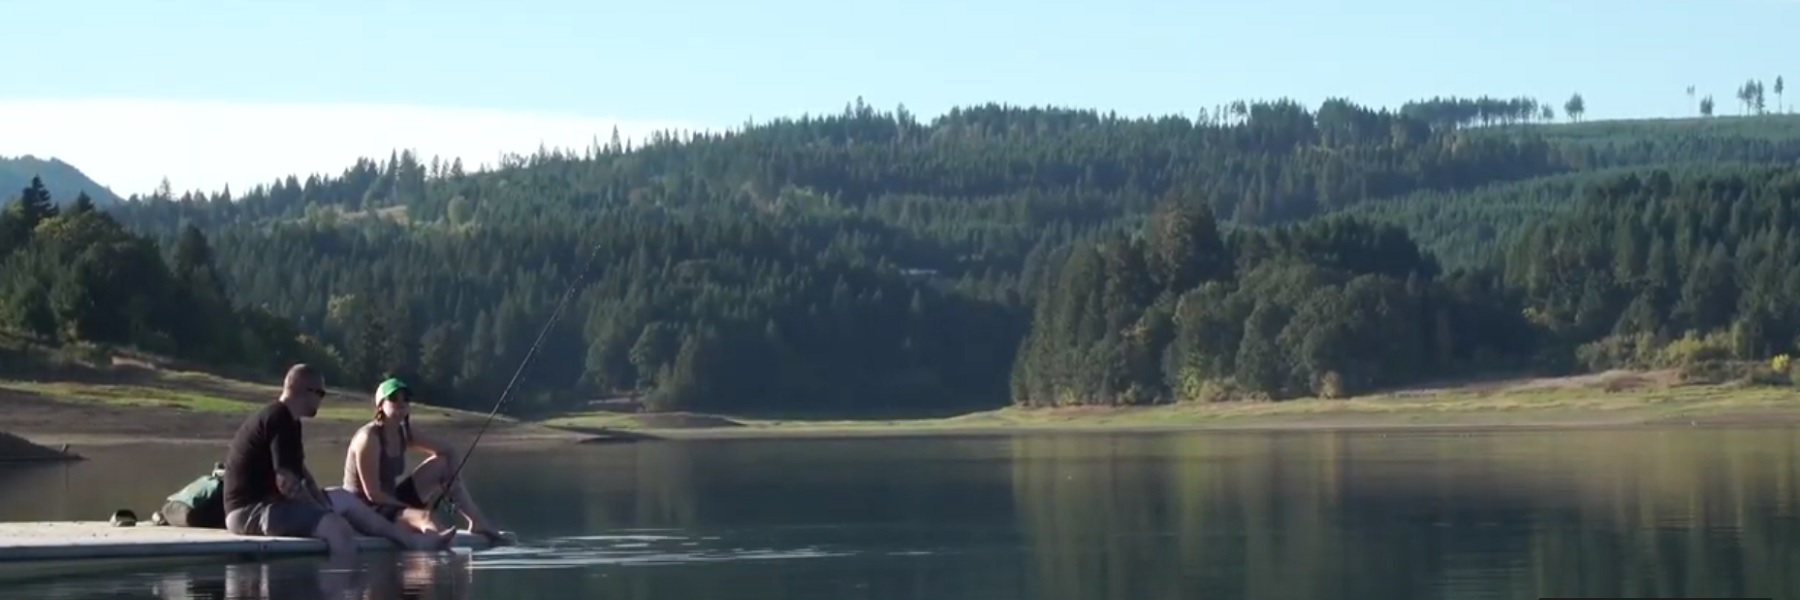 website homepage banner more days like this hagg lake